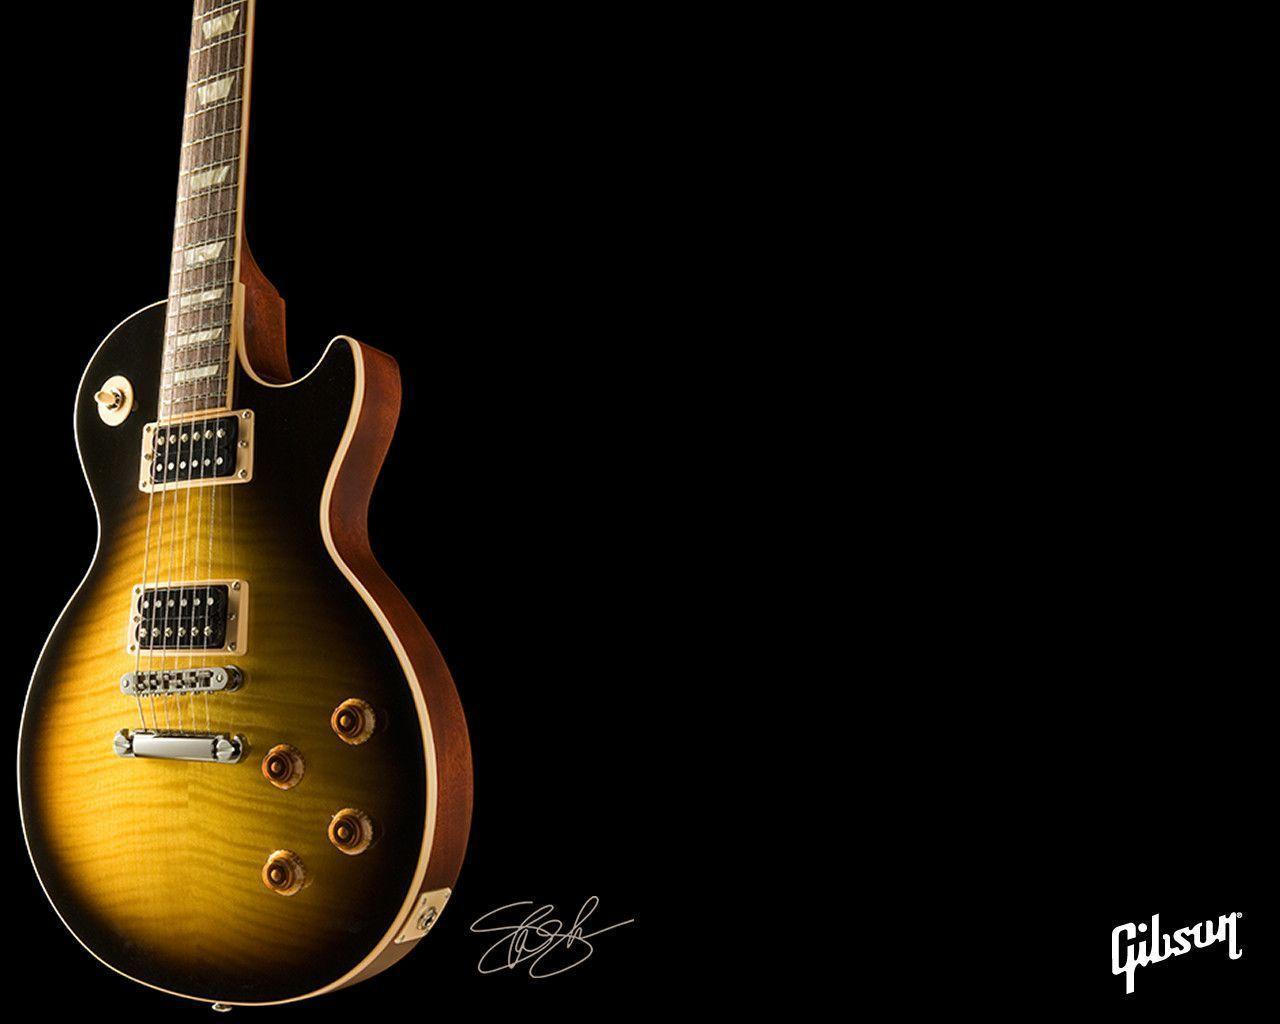 Gibson Wallpapers Top Free Gibson Backgrounds